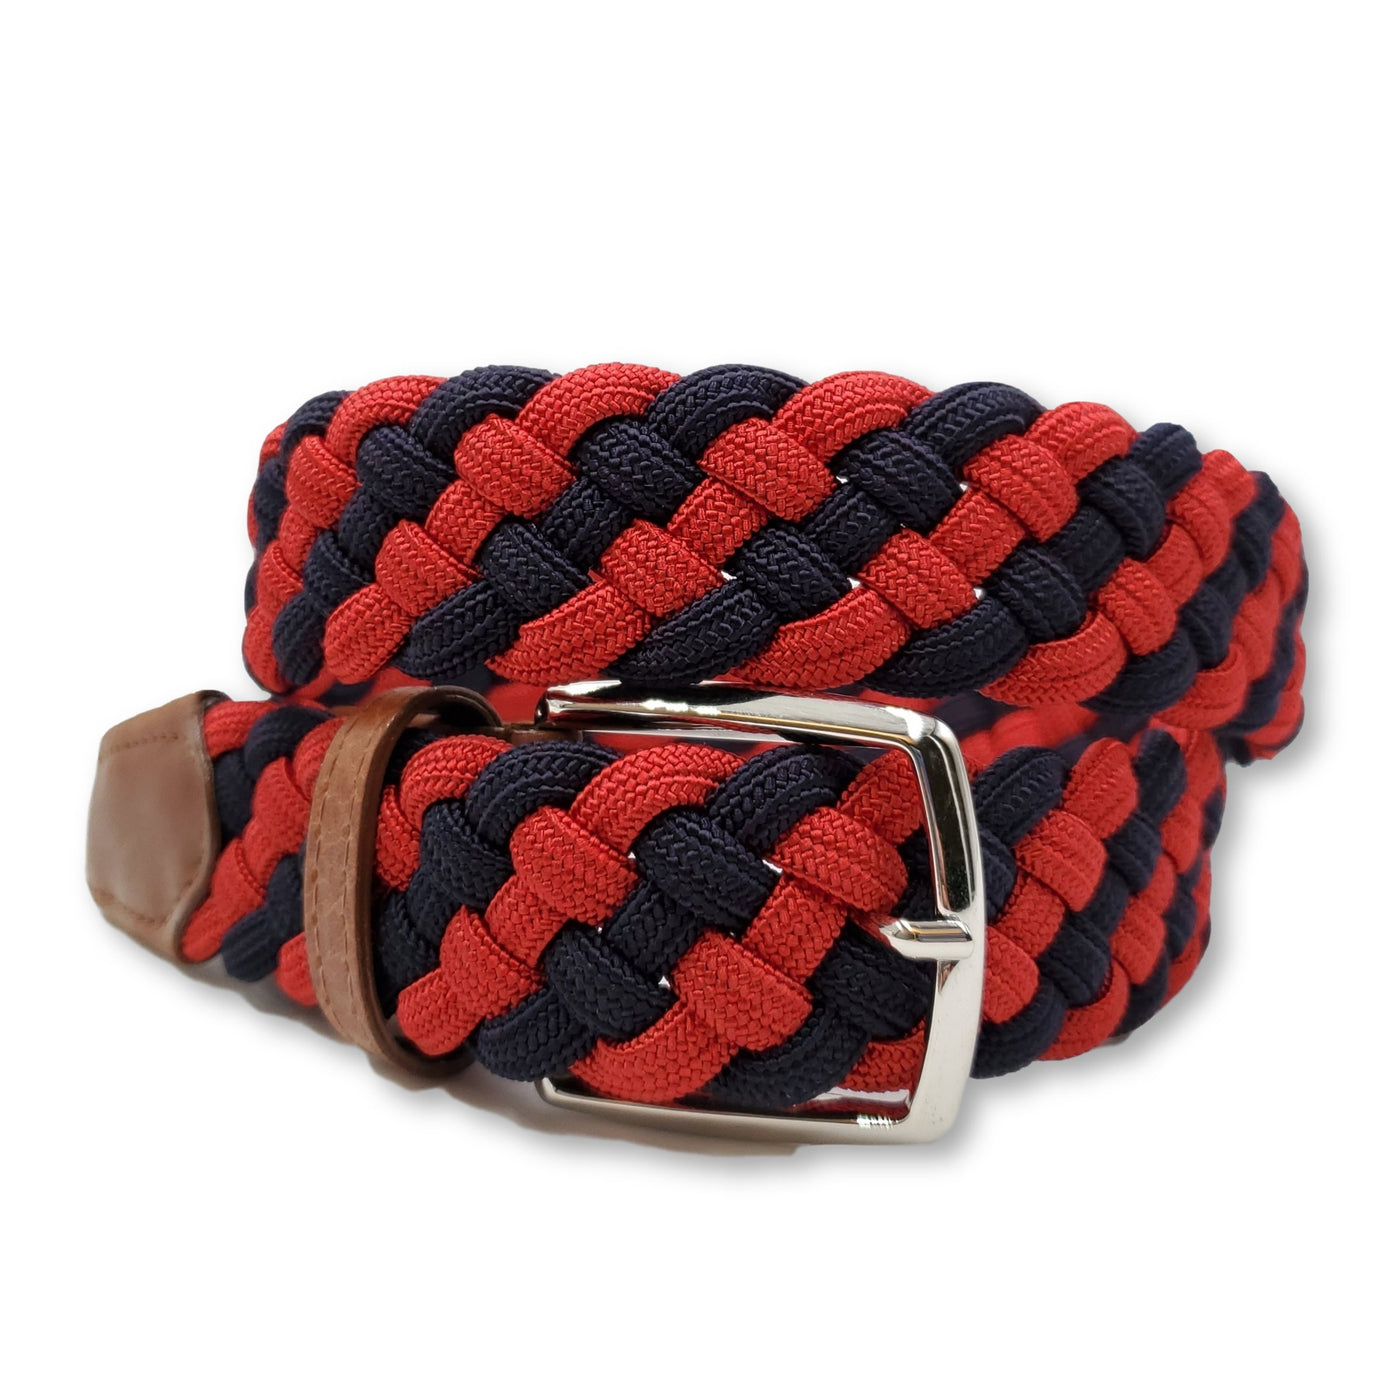 Navy & Red Braided Elastic Stretch Belt